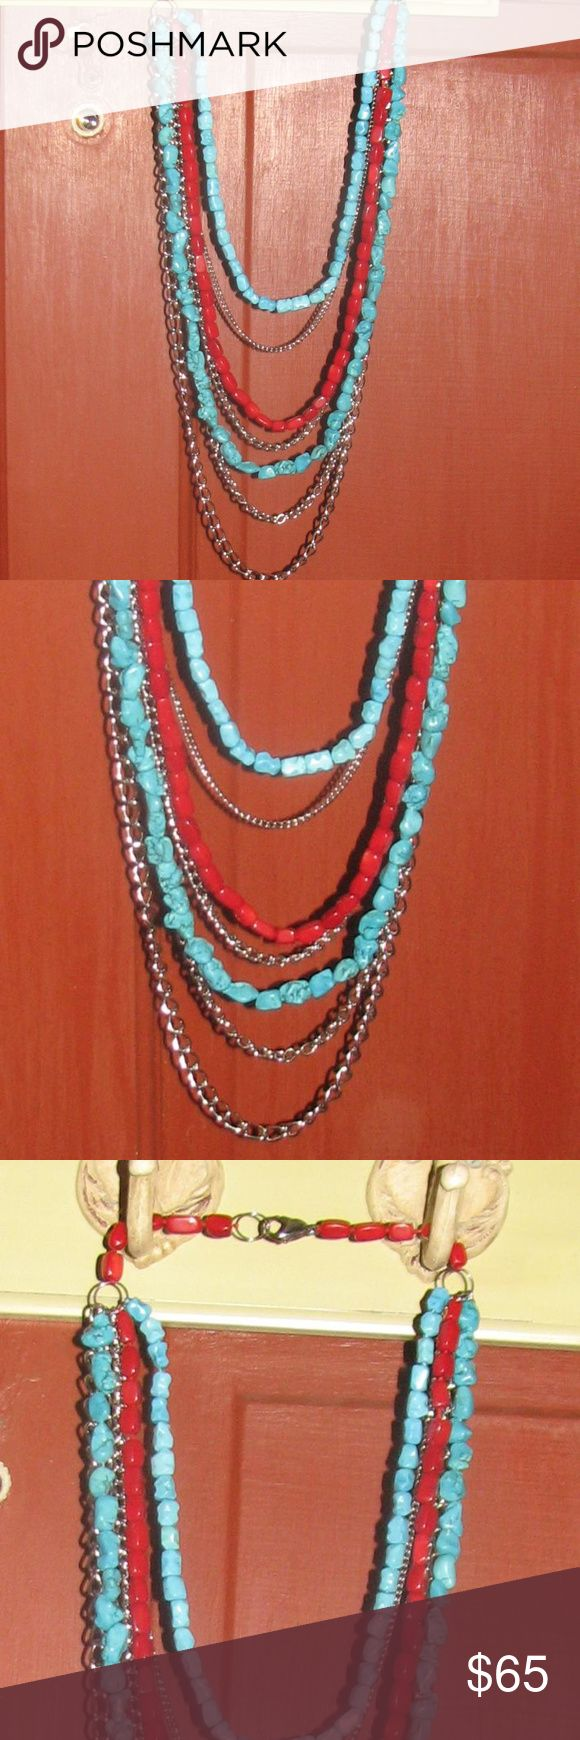 "TURQUOISE and RED CORAL Statement Necklace Almost new STATEMENT NECKLACE.   Two strands with turquoise, one with red coral, and four of stainless steel.  Only marking I could find on the clasp is ""Stainless Steel"", but I couldn't get a good enough picture of it.  Longest chain is approximately 30 inches, shortest is 20. Jewelry Necklaces"